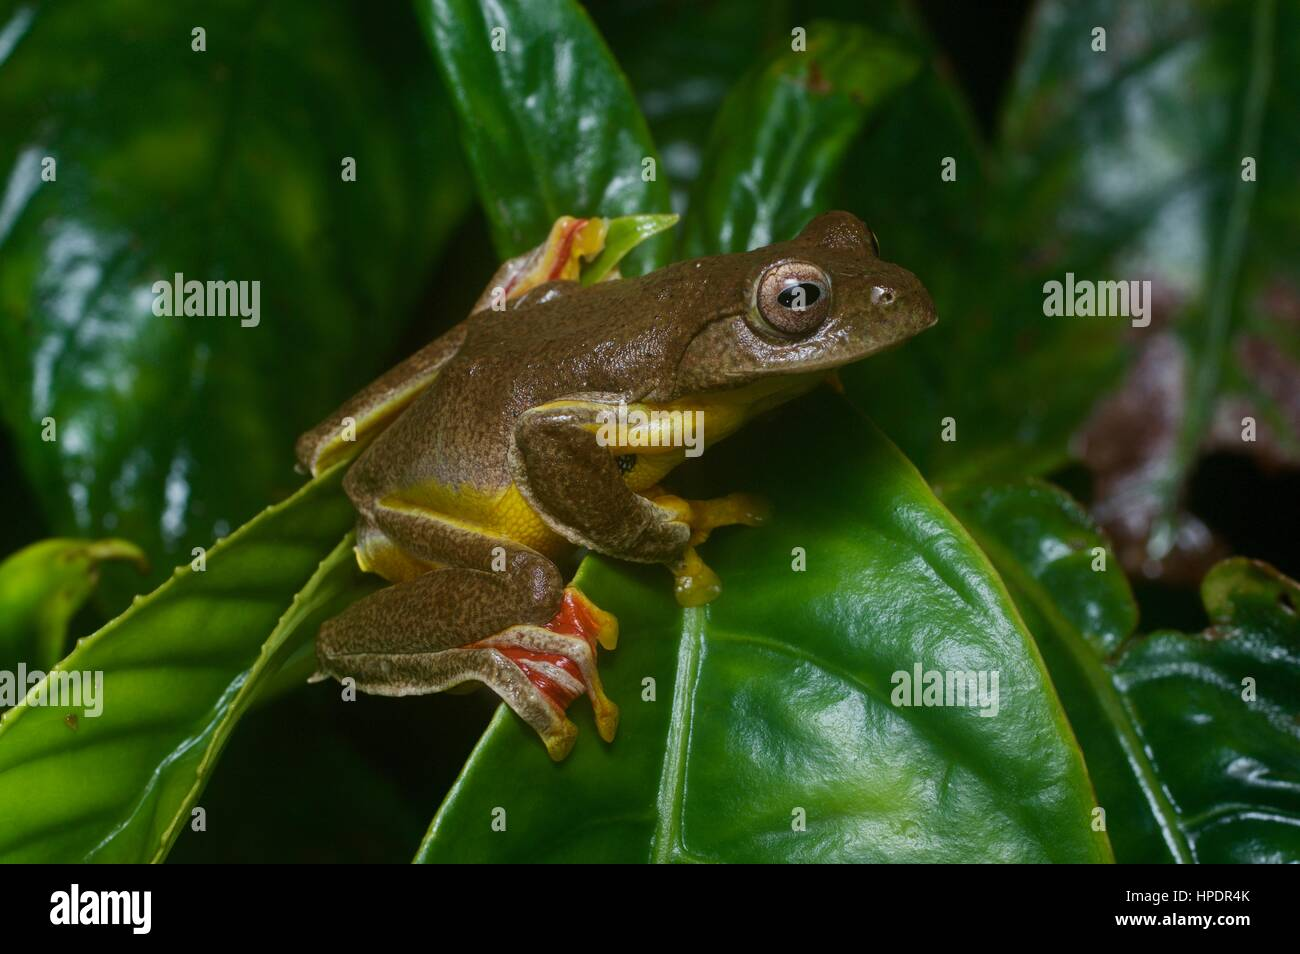 A Twin-spotted Flying Frog (Rhacophorus bipunctatus) in the rainforest at night in Genting Highlands, Pahang, Malaysia - Stock Image